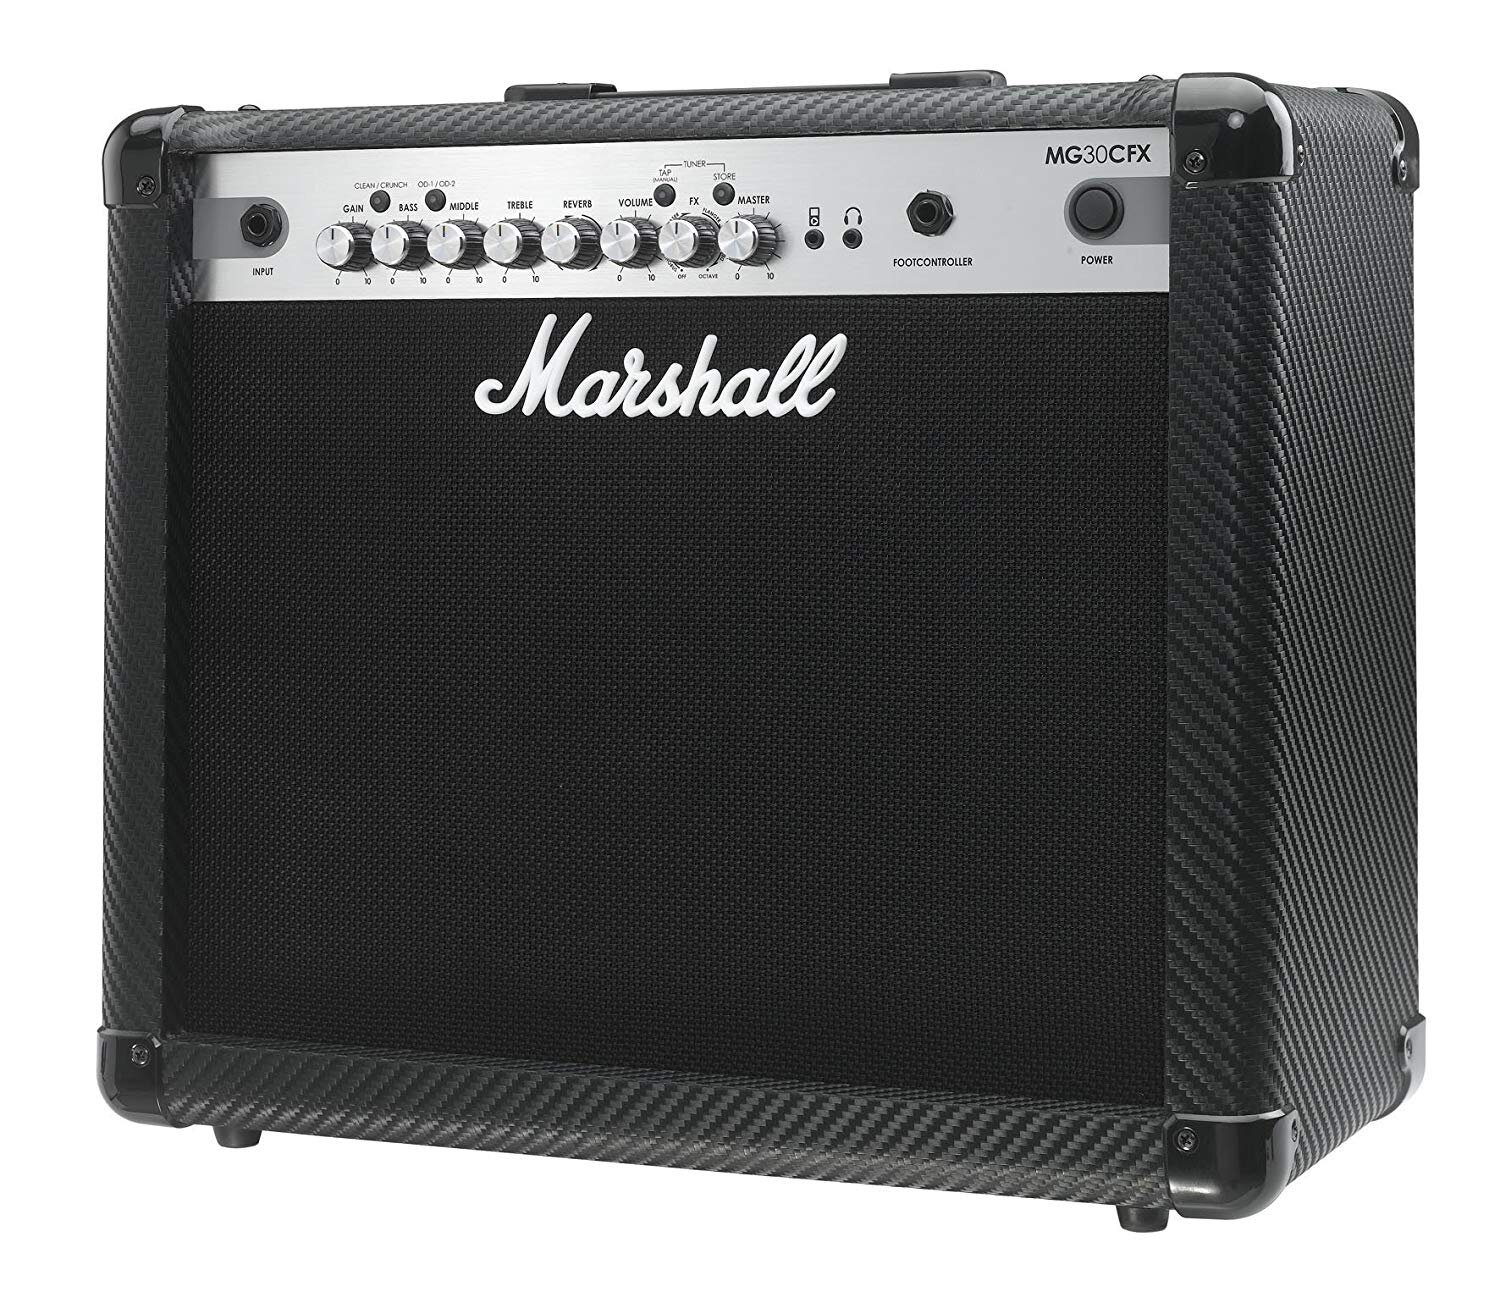 Amply - Amplifier Marshall MG30CFX